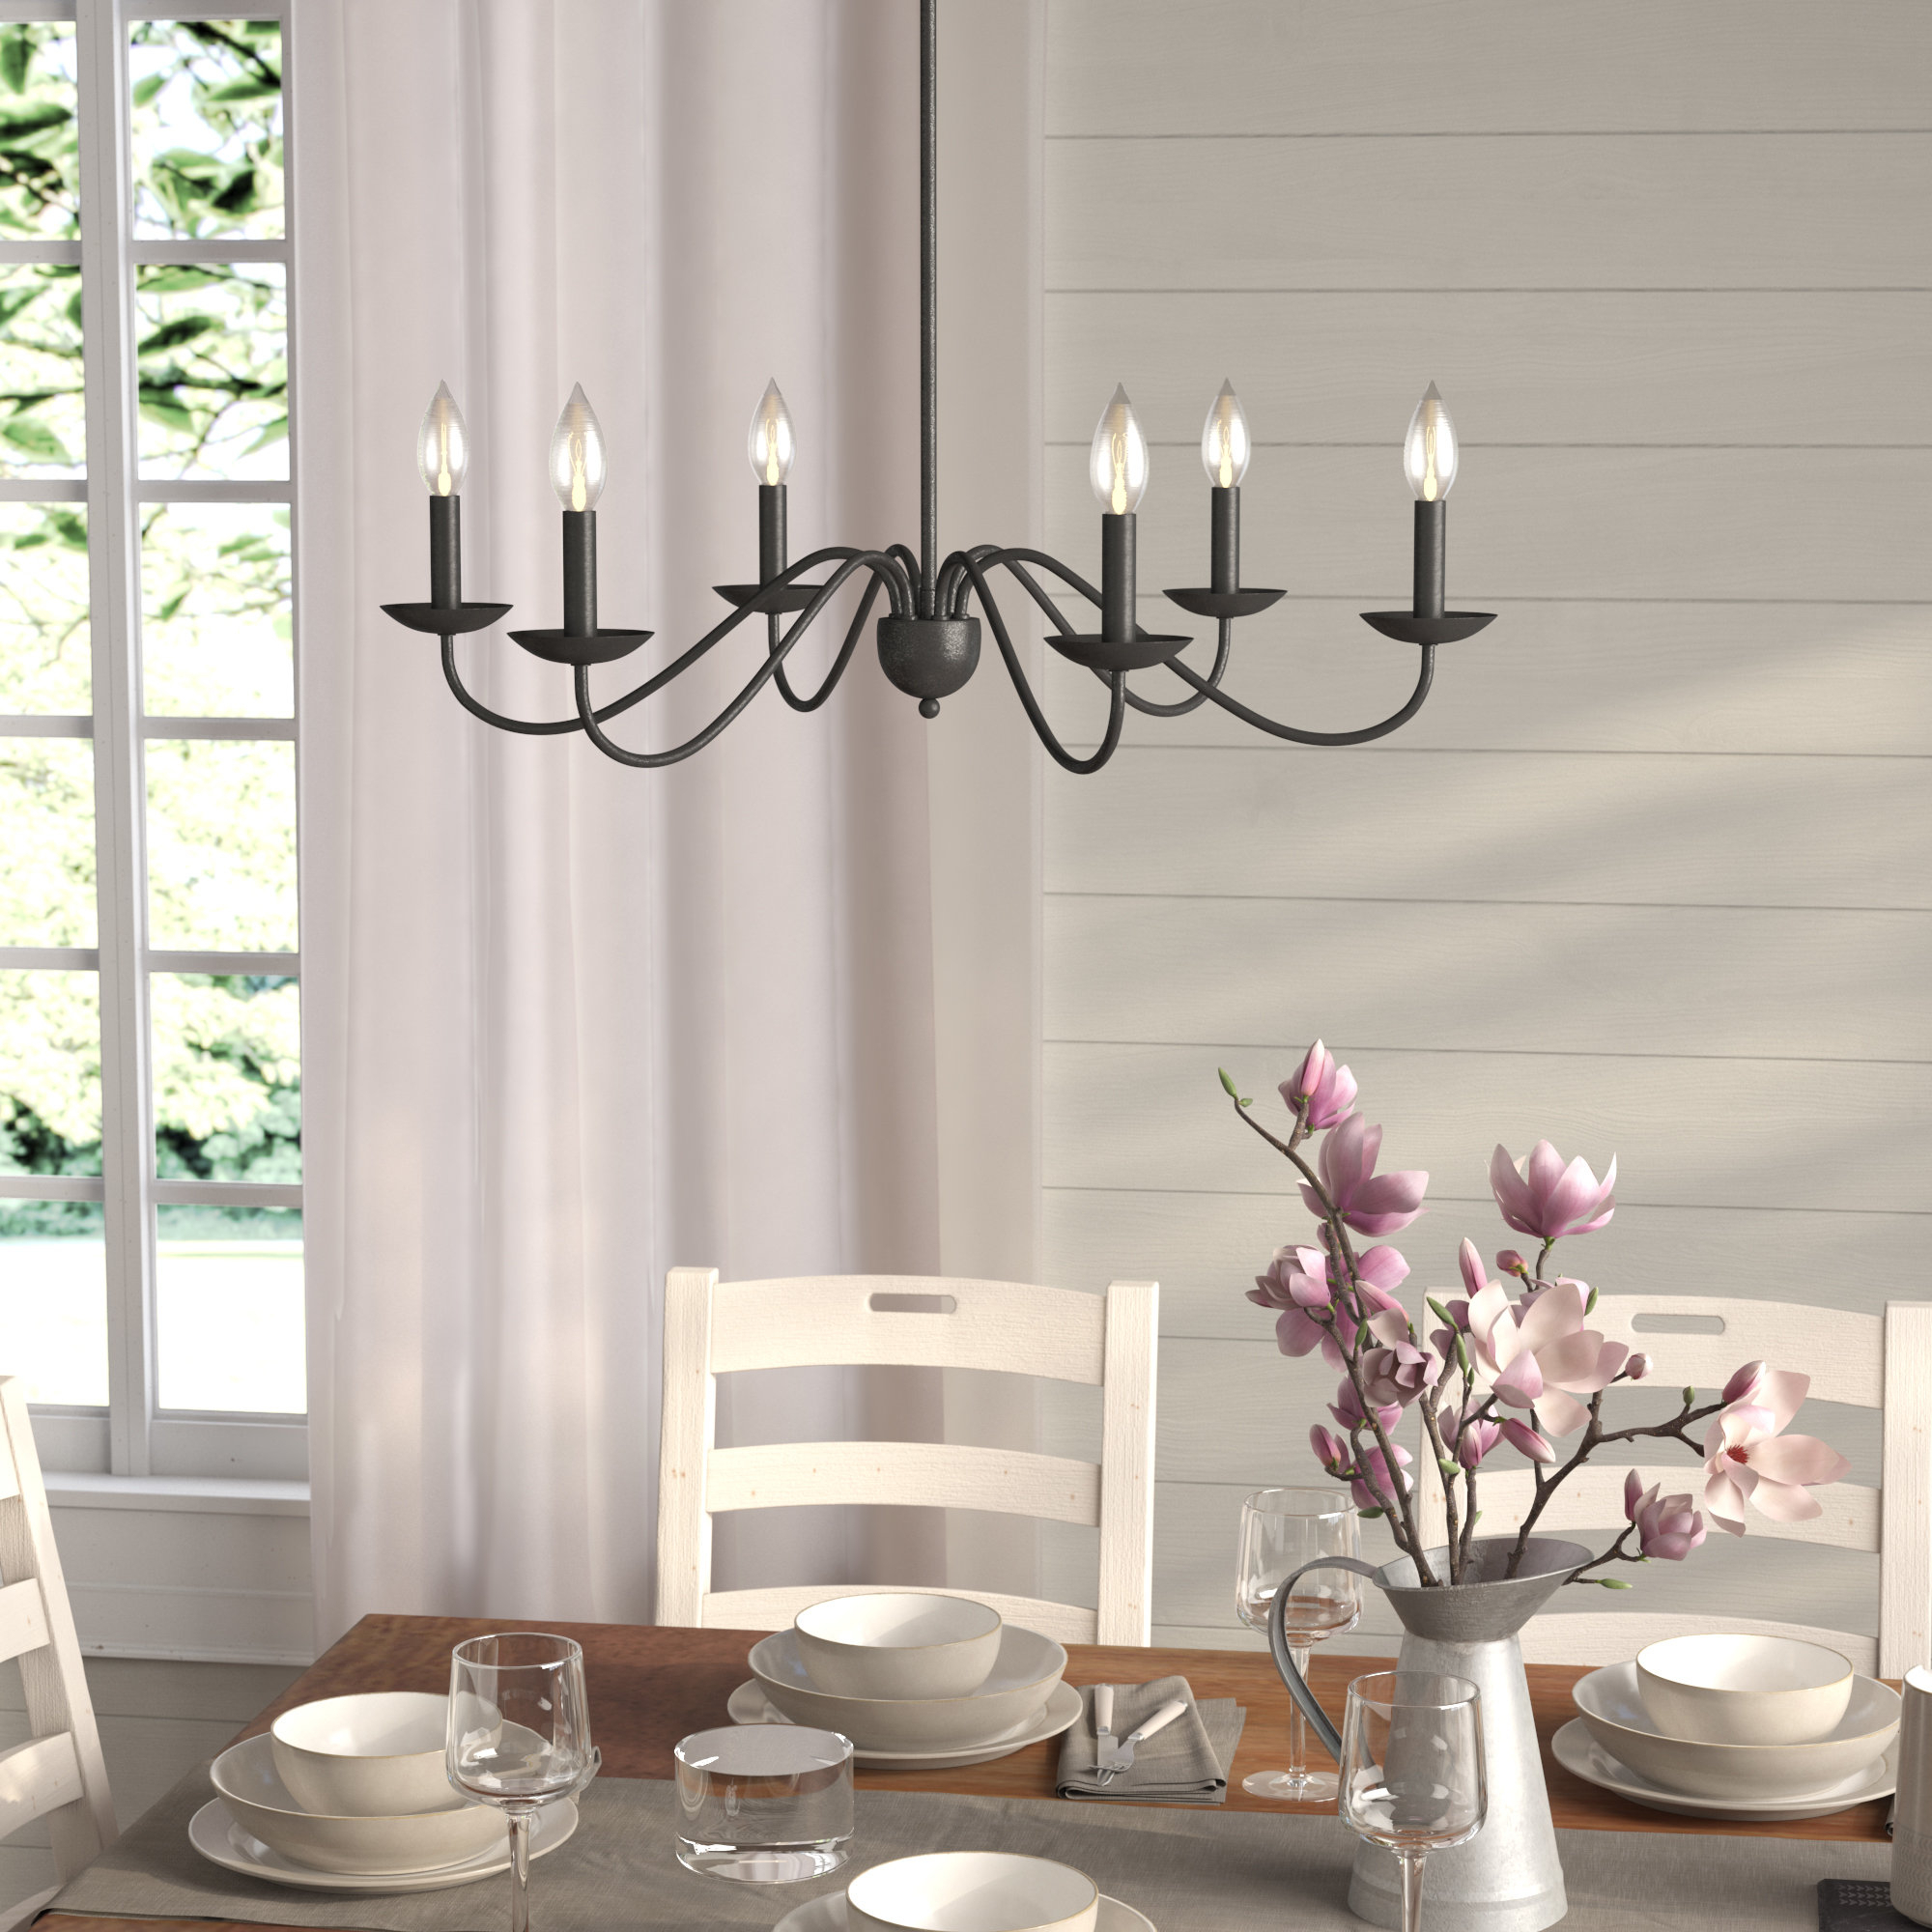 Widely Used Shaylee 6 Light Candle Style Chandeliers With Regard To Perseus 6 Light Candle Style Chandelier (Gallery 18 of 20)